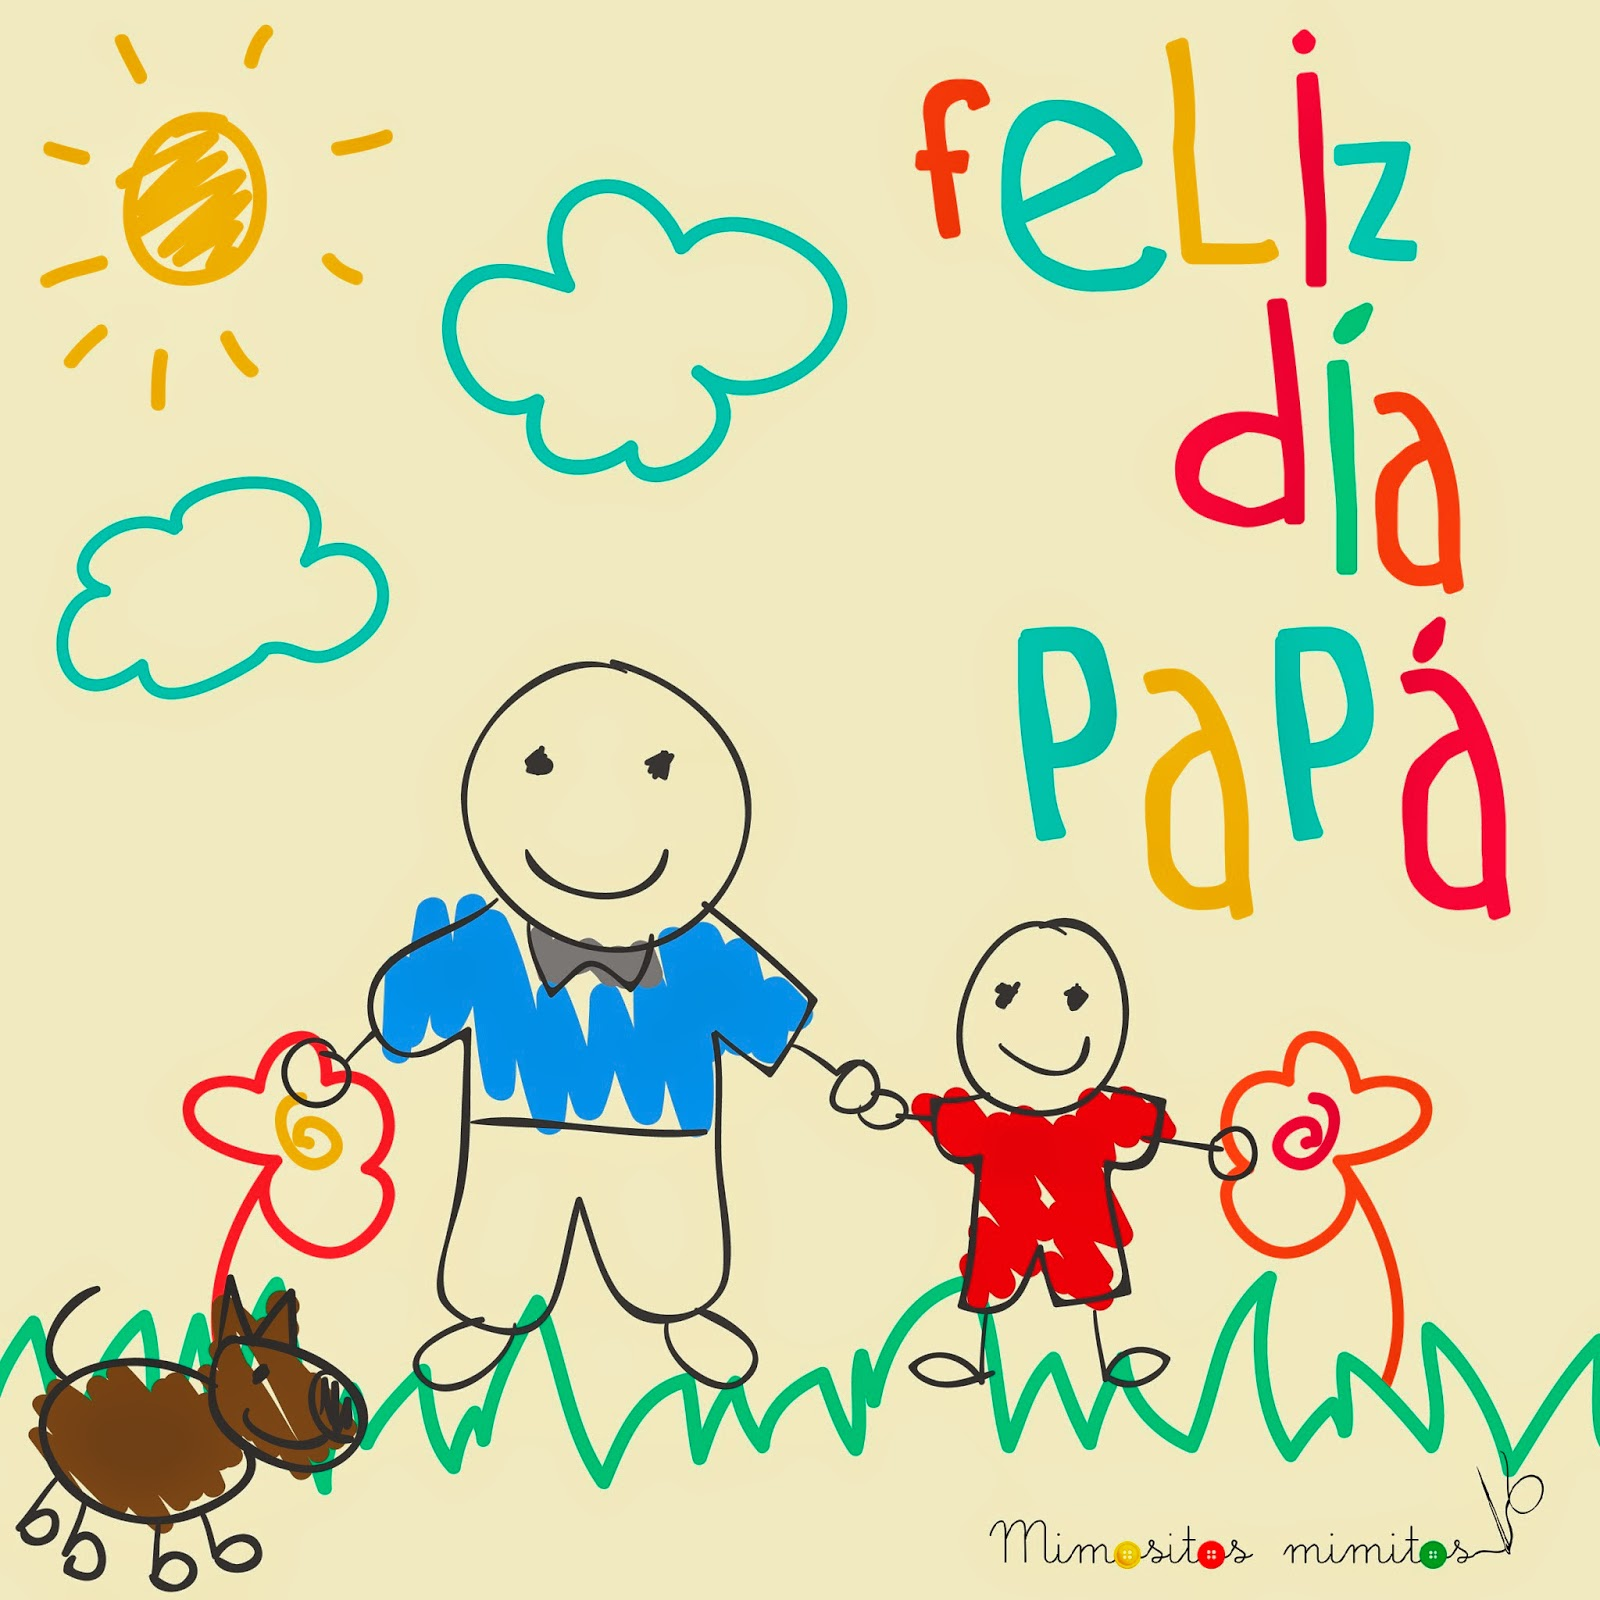 dia del padre father s day dia del pare freebies descargable gratis